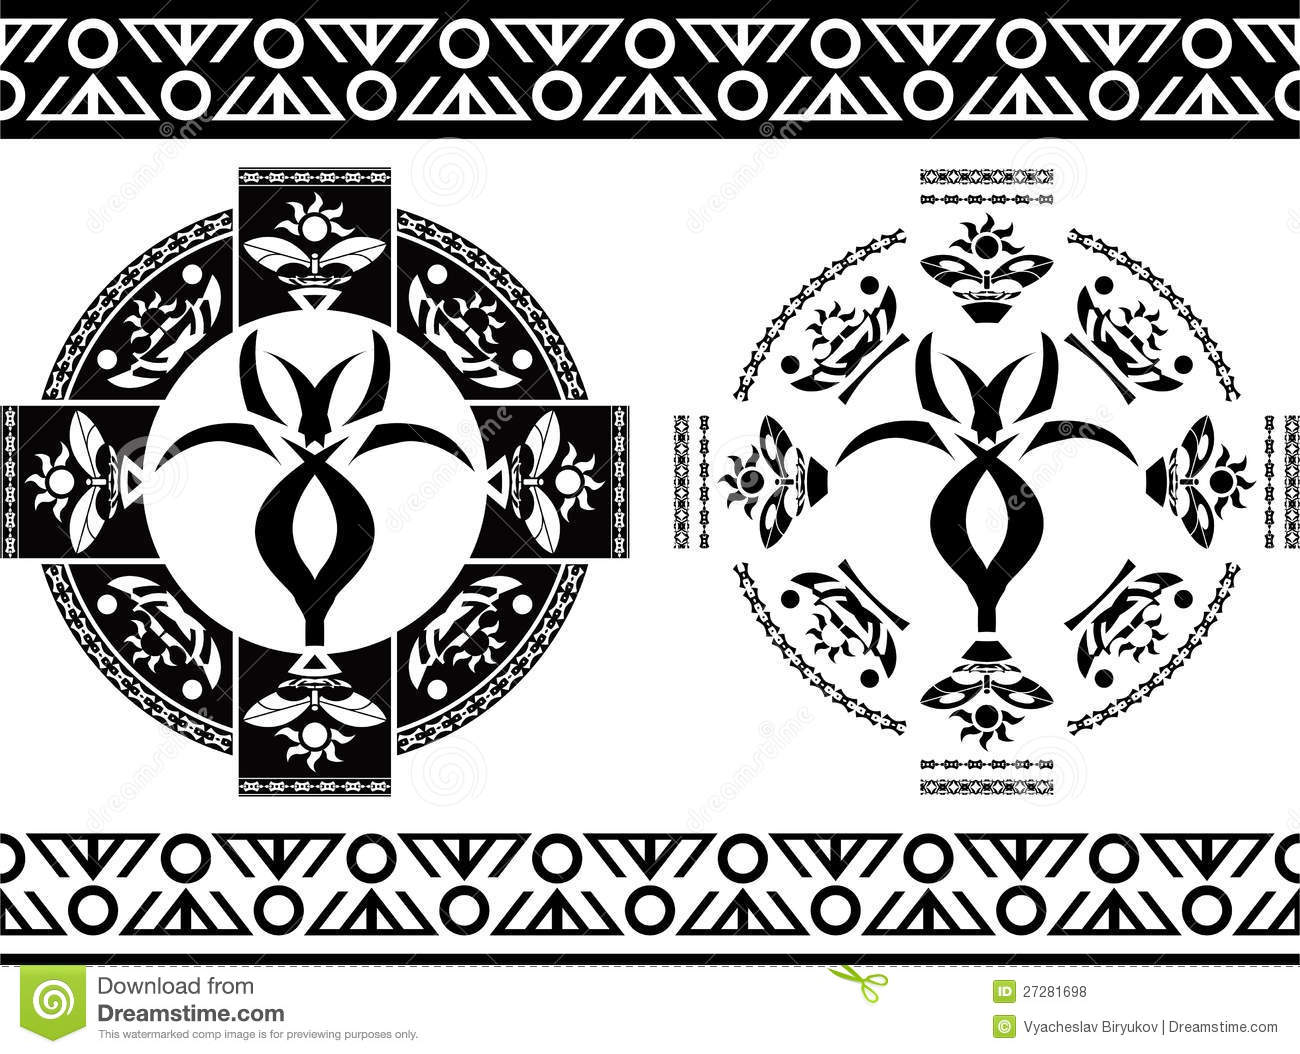 Aztec Symbol For Protection | www.imgkid.com - The Image ...